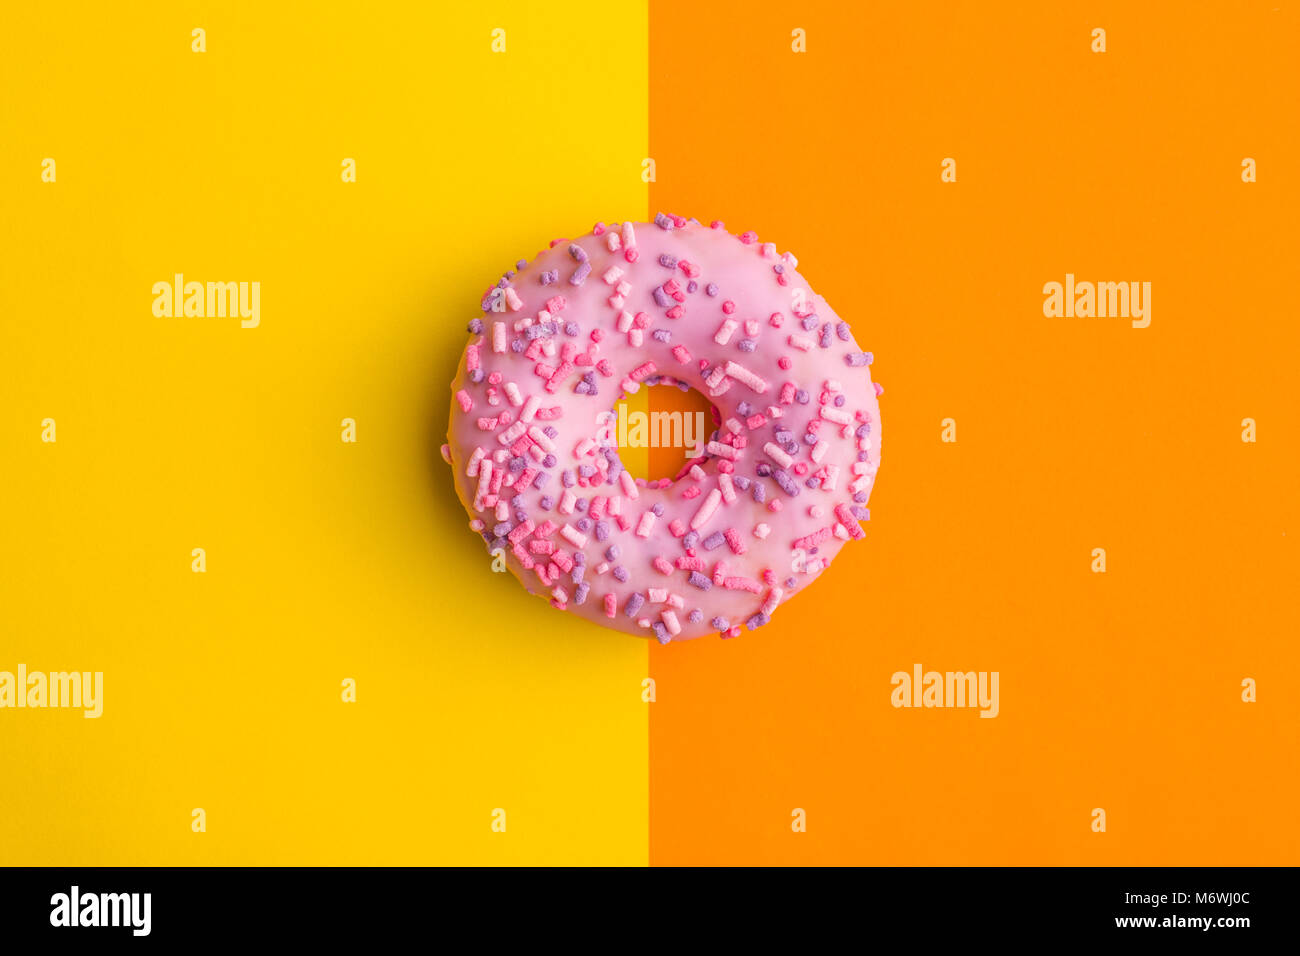 One pink donut on double colorful background. - Stock Image